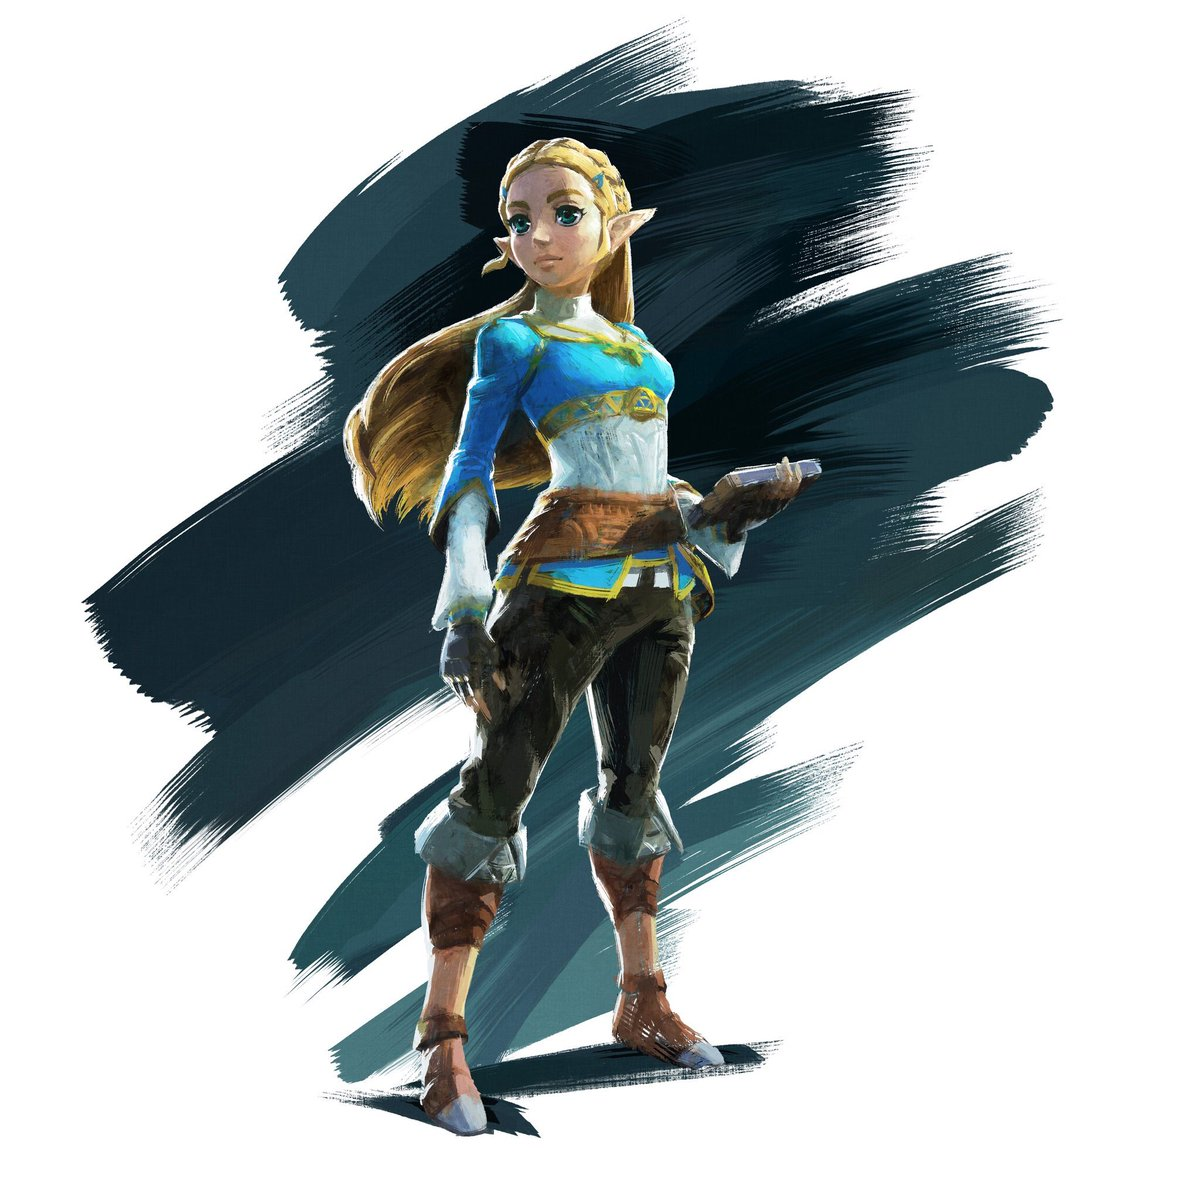 Official artwork of Zelda! #BreathOfTheWild https://t.co/XqeWKhpP4O